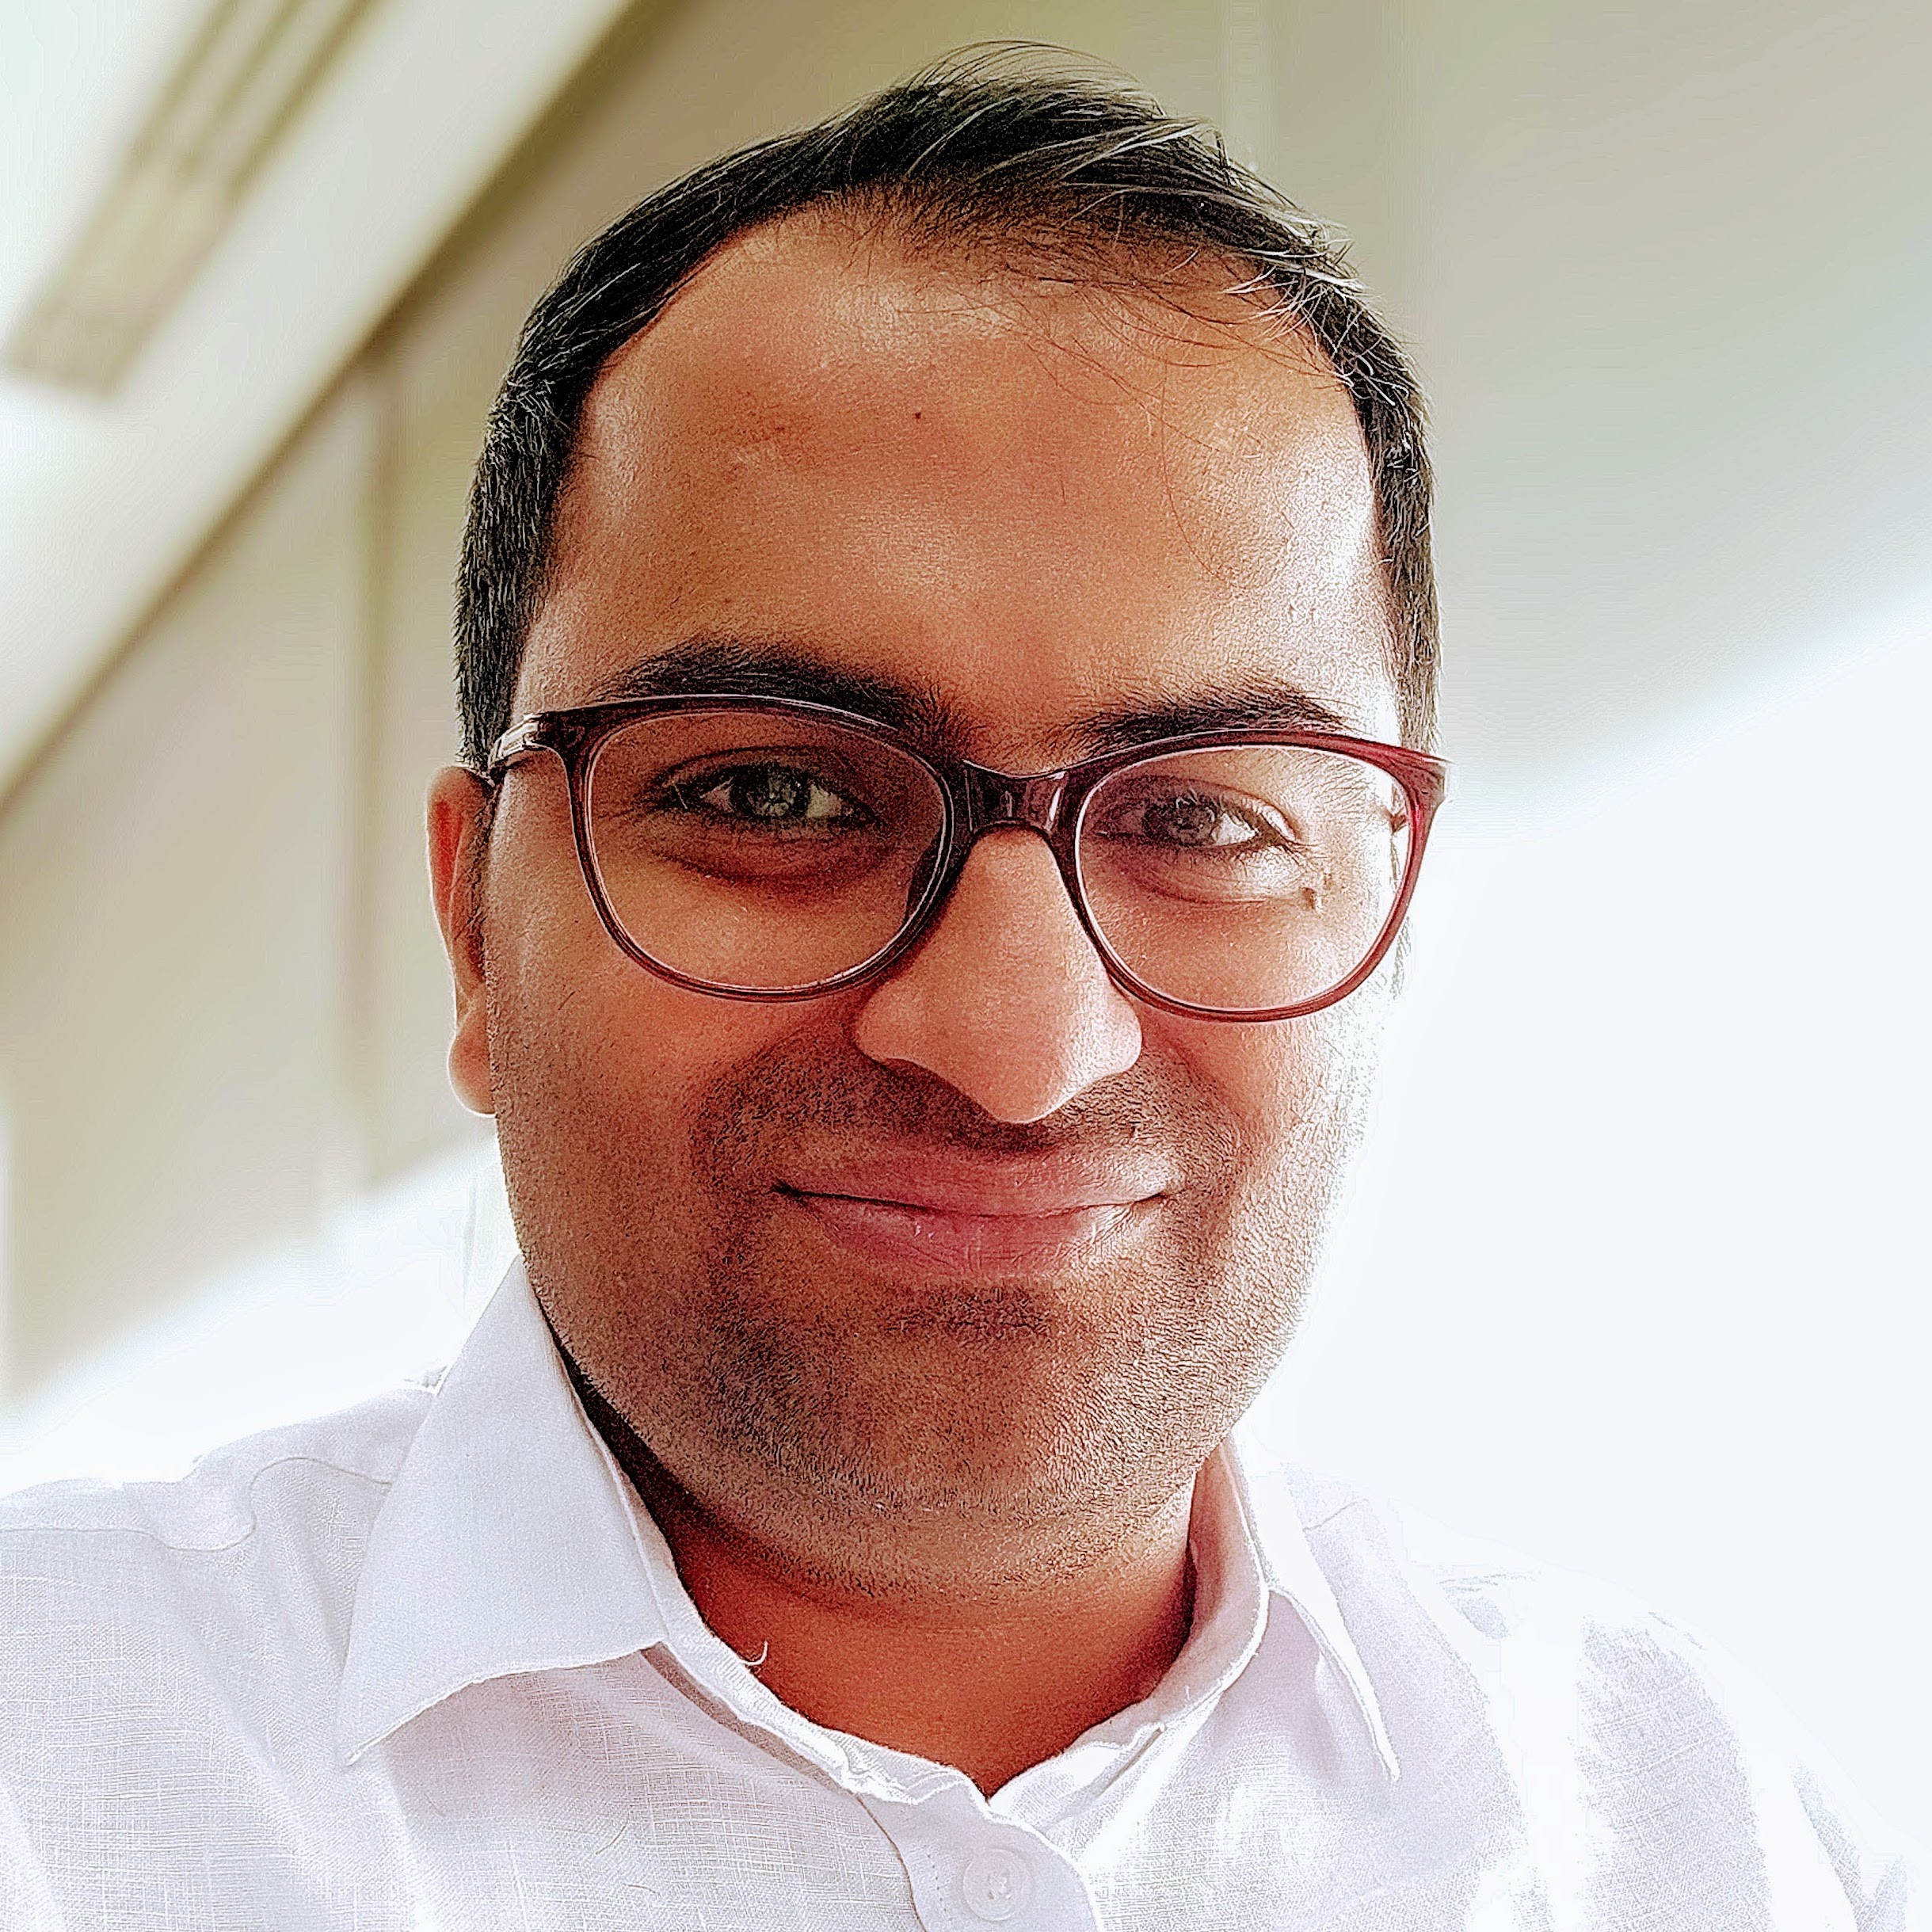 Excelling at Enterprise DevOps with Siddharth Pareek